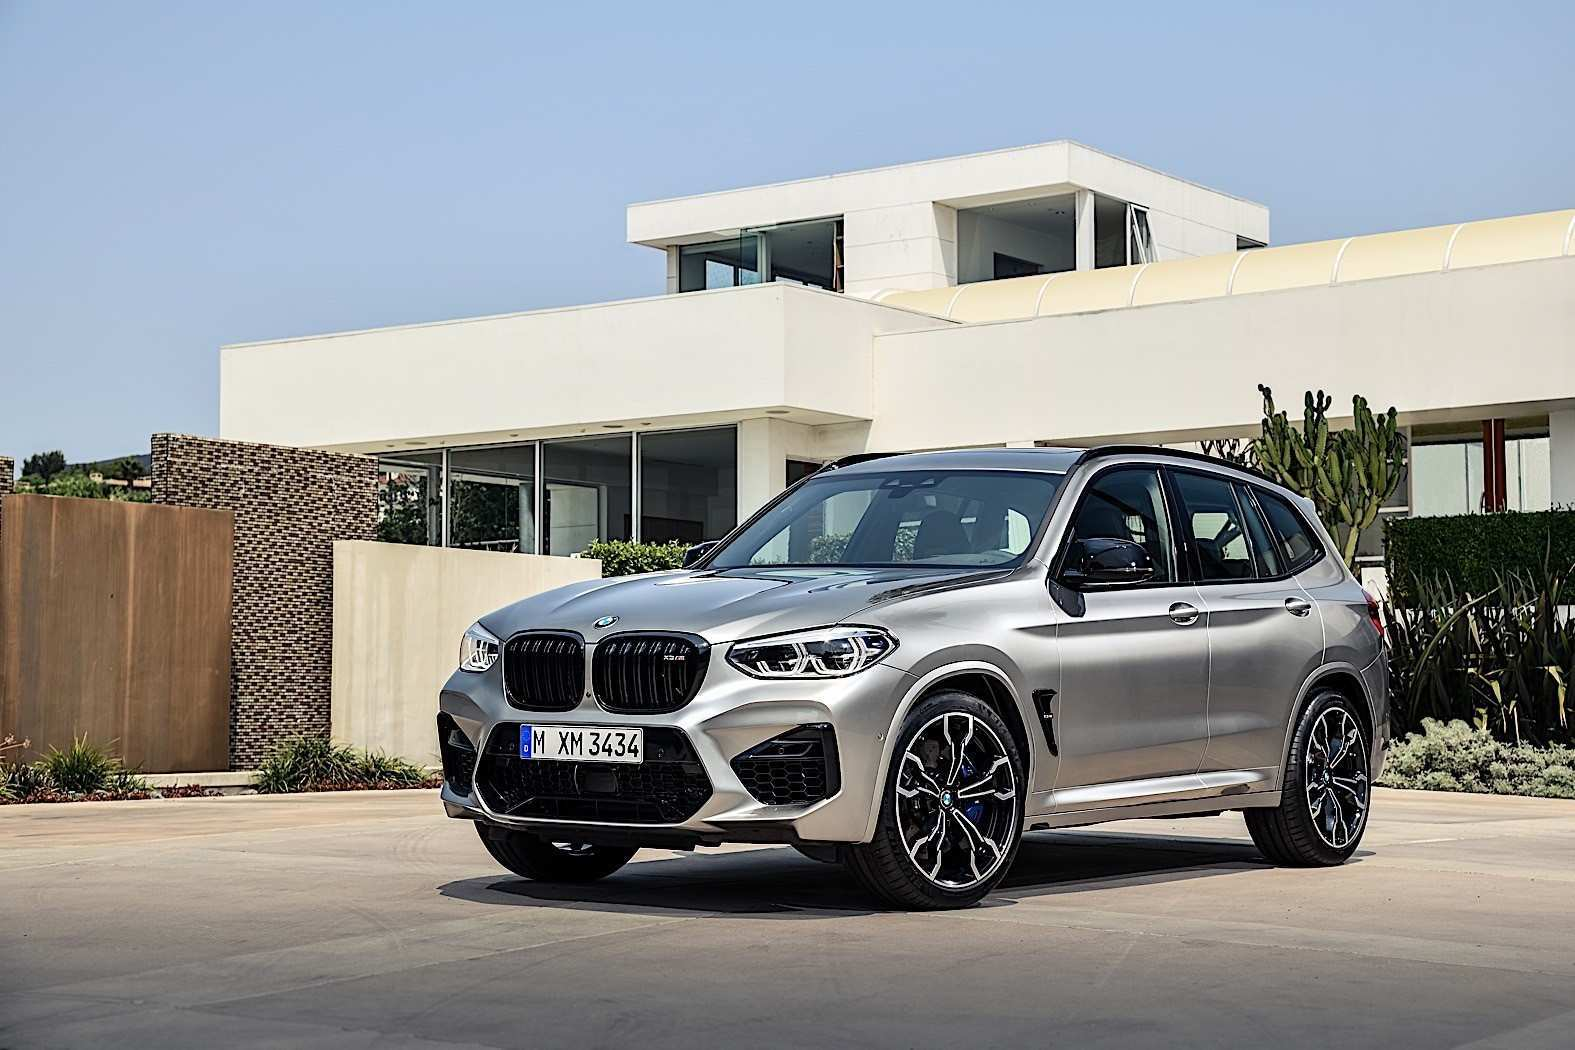 67 The 2020 BMW X3M Ordering Guide Ratings for 2020 BMW X3M Ordering Guide